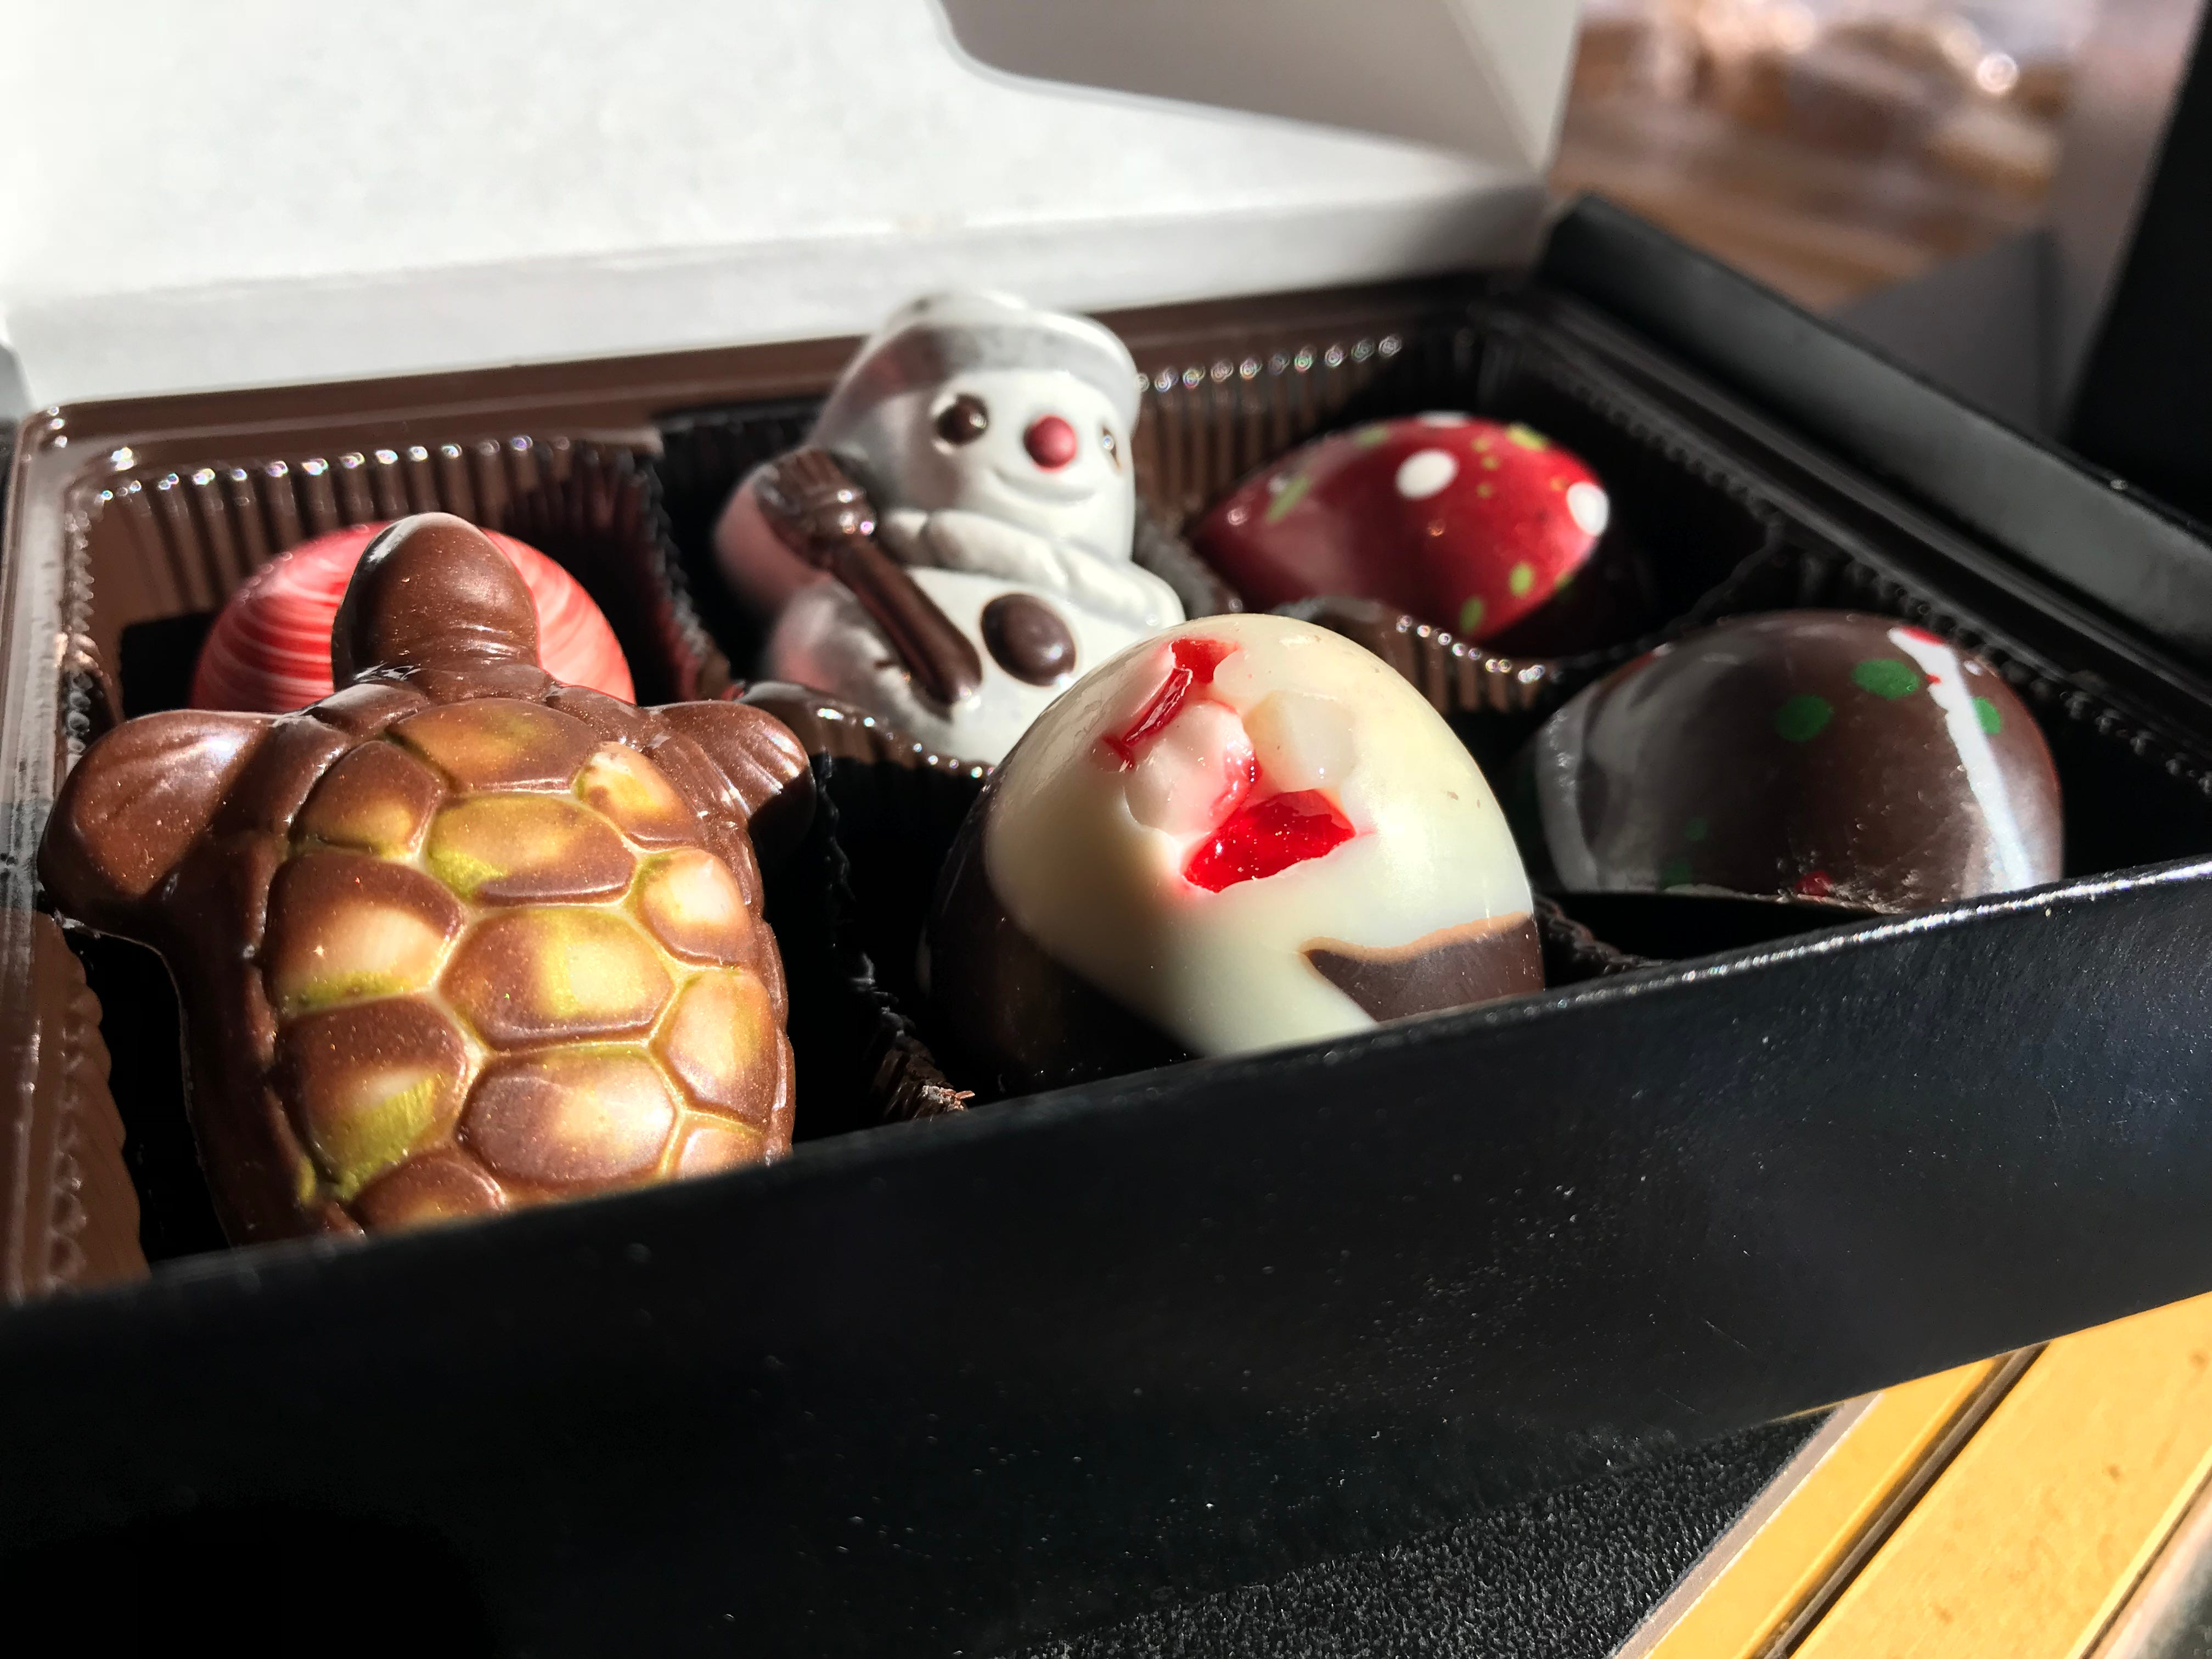 Truffles from Coffee & Chocolate on Union Avenue come in some holiday themes.